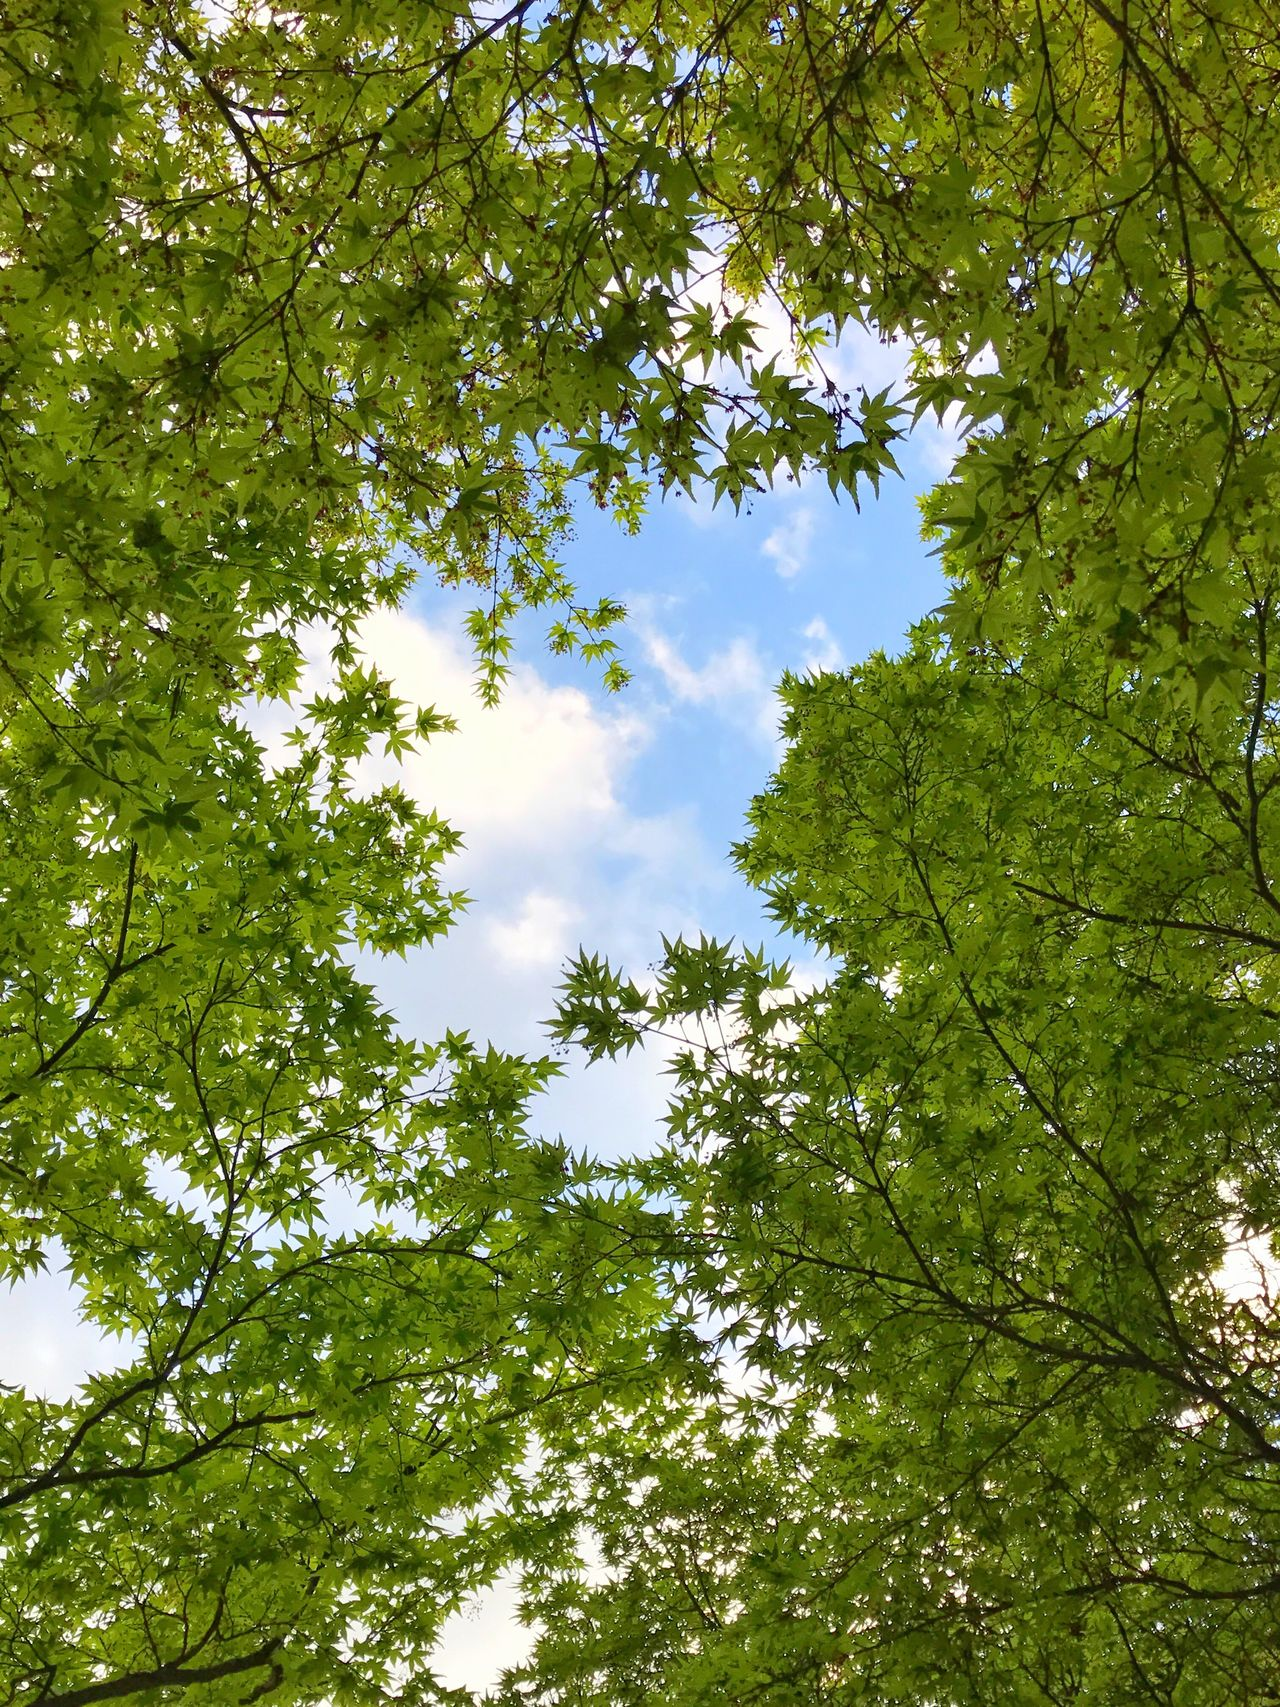 Tree Kyoto City Low Angle View Nature Forest Growth Green Color Leaf Branch Day Beauty In Nature Green Outdoors No People Sky Tranquility Blue Sky